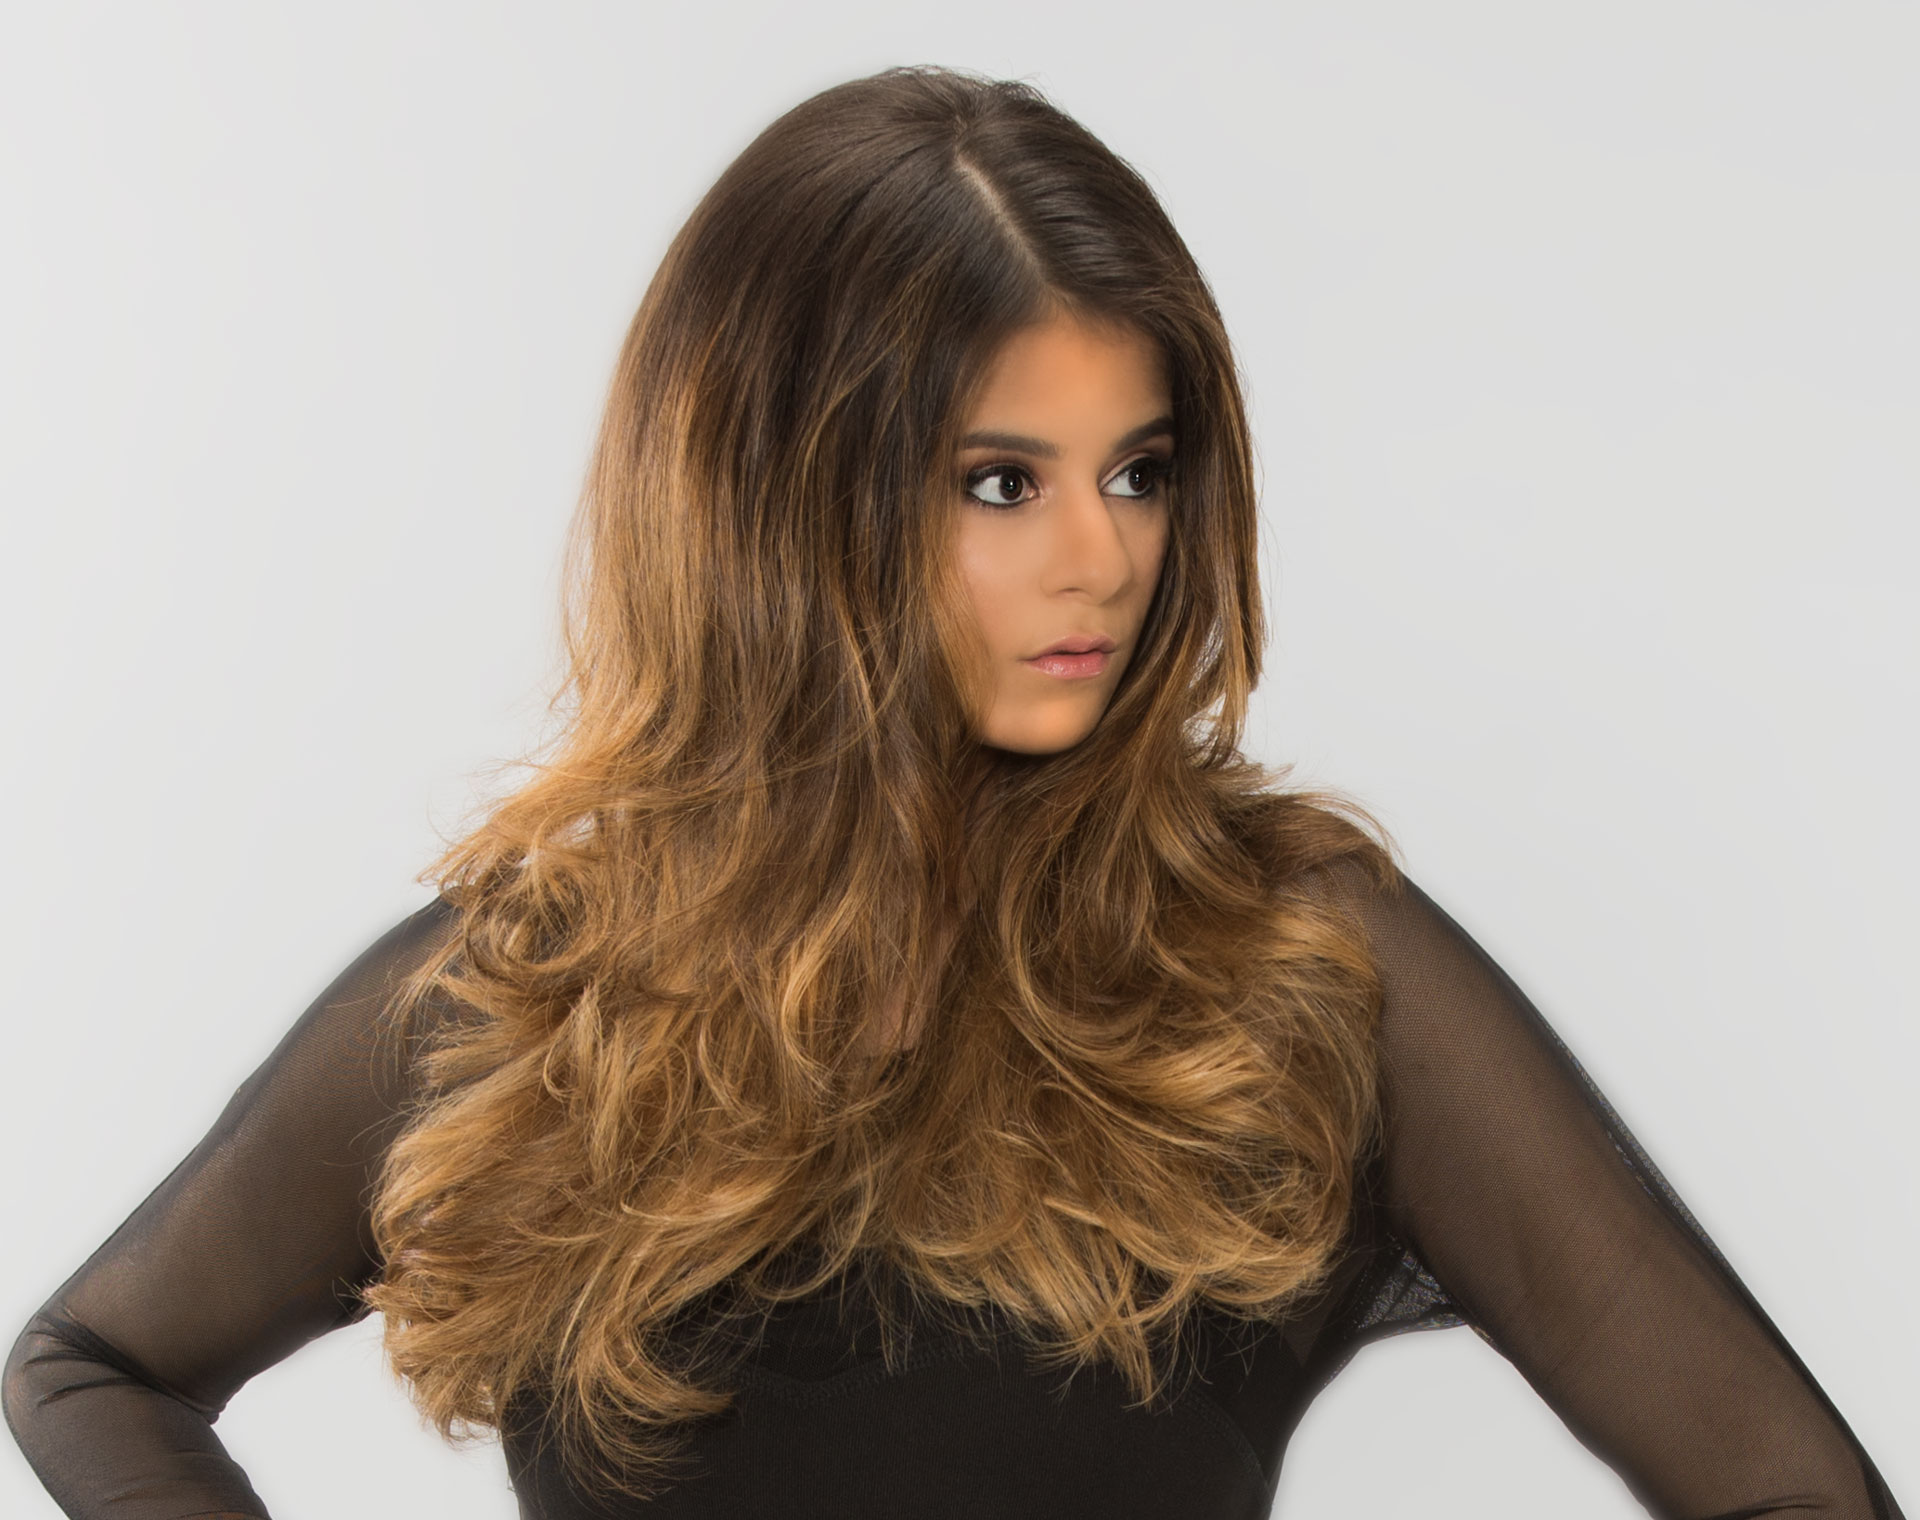 Best Dallas Balayage Ombre Sombre Ombreage Ecaille Tortoiseshell Highlight Lowlight Hair Color Colorist Hair Salon Plano Dallas Best Frisco Allen McKinney Addison TX DFW 4A